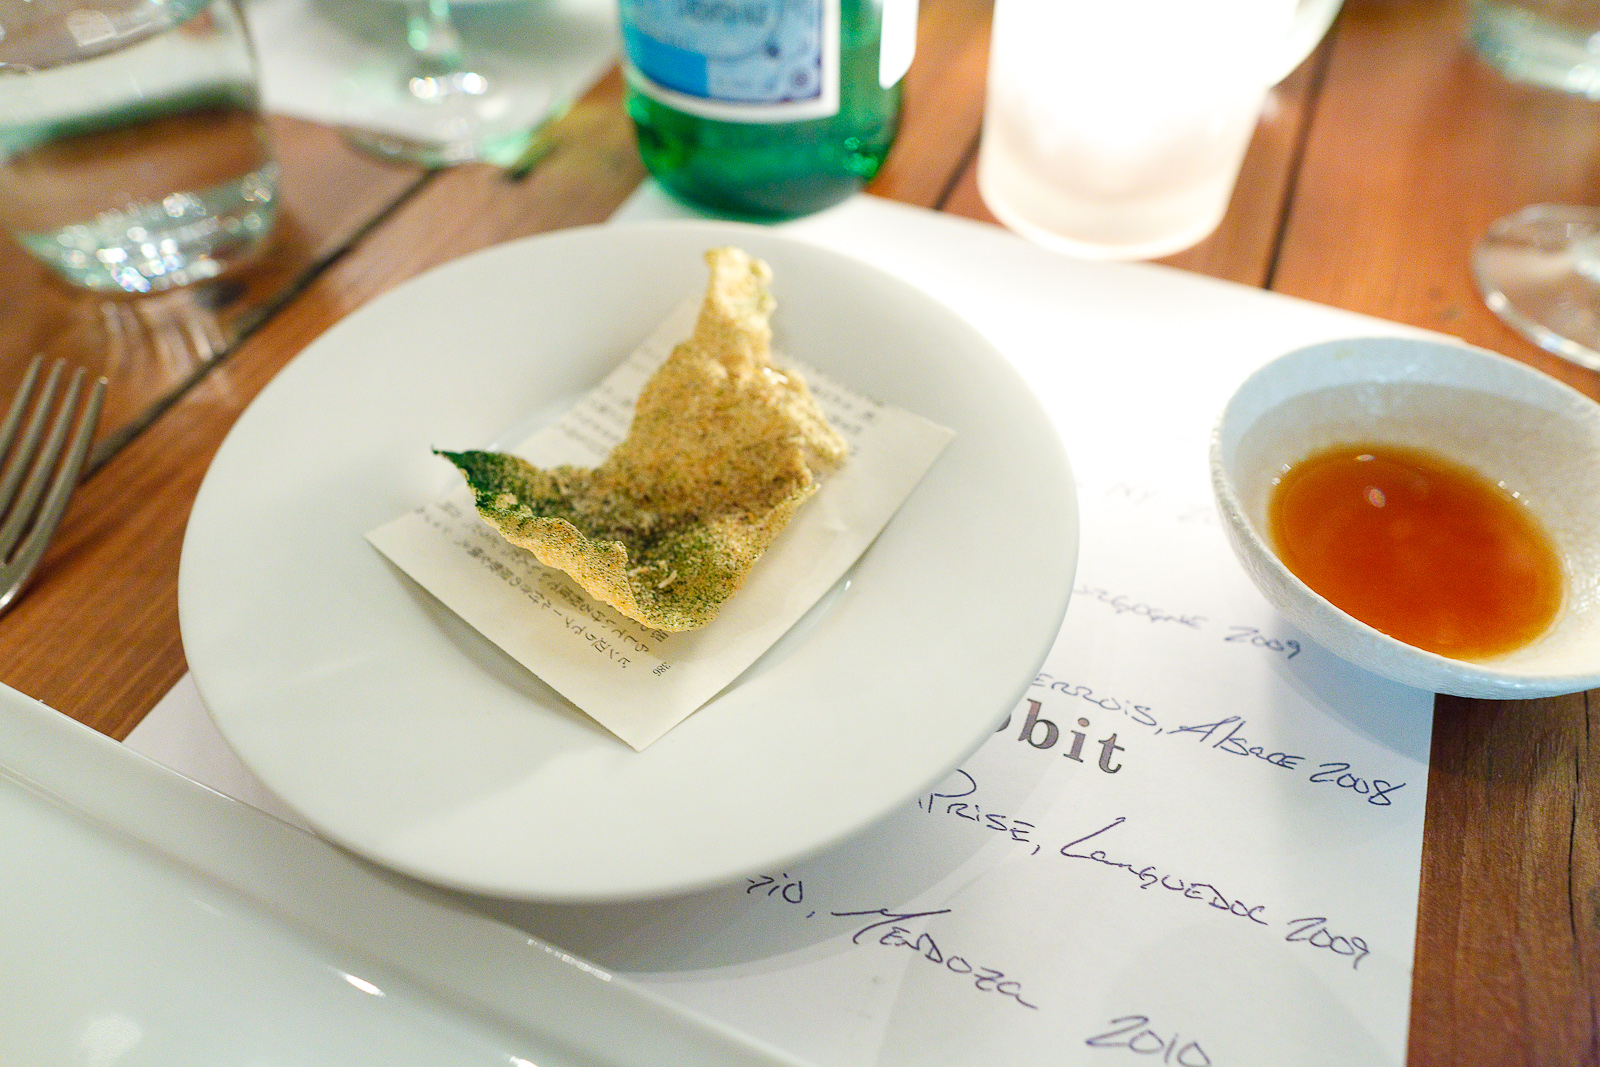 2nd Course: Rice crackling of river vegetable, shrimp floss, and perilla salt.